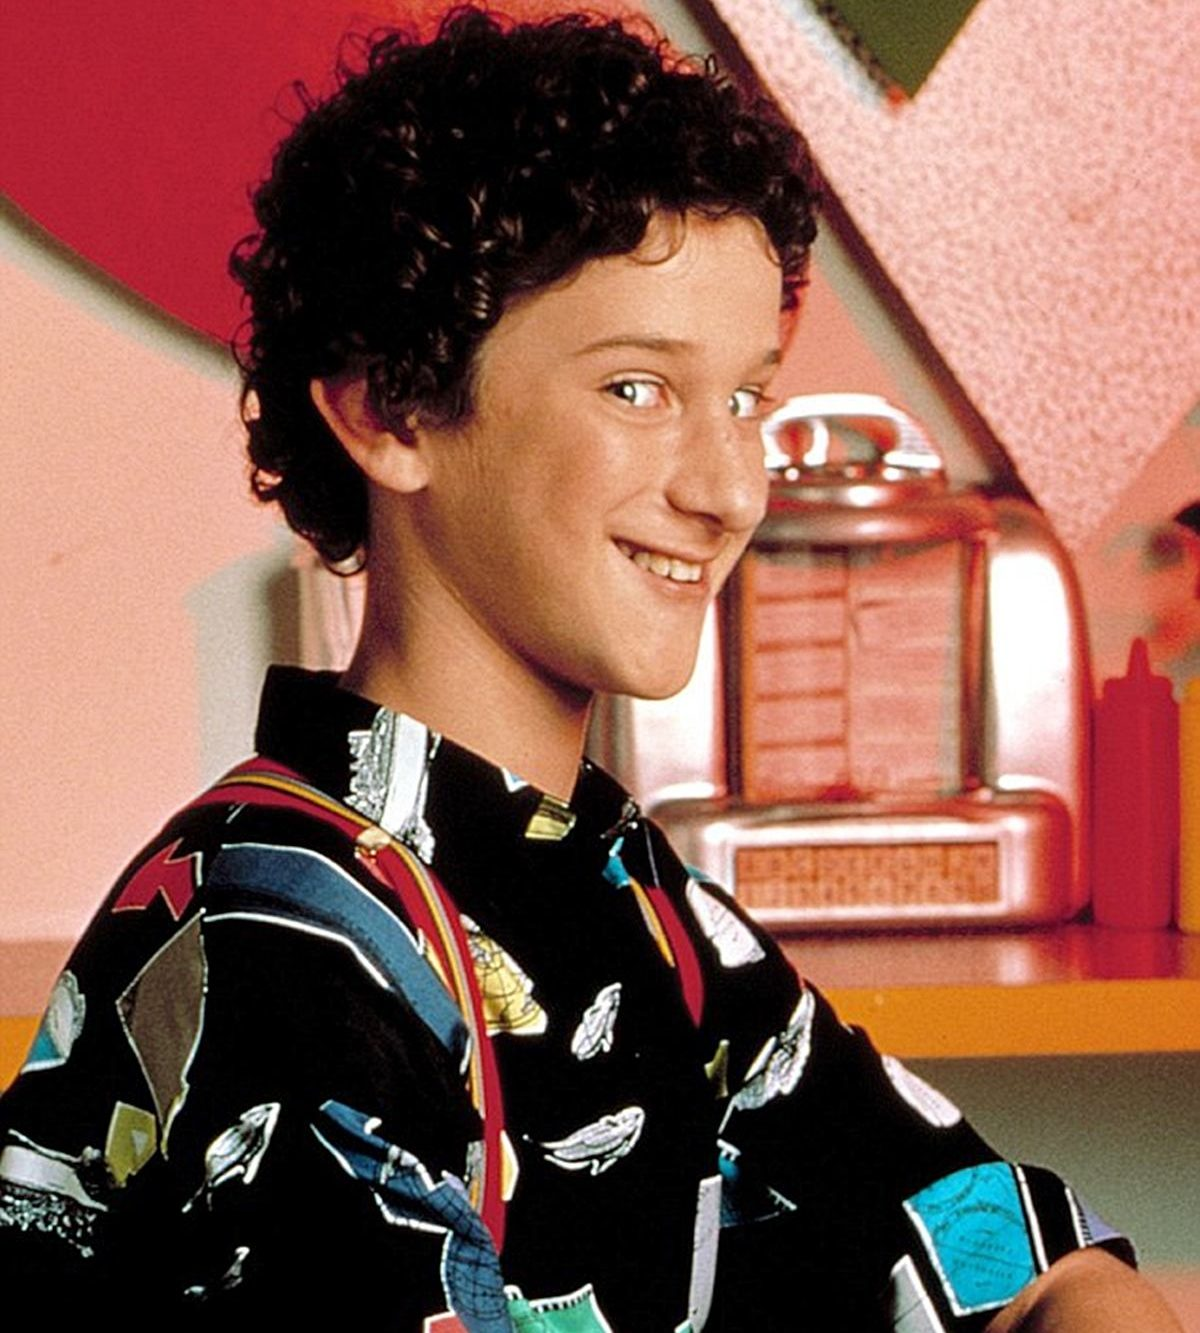 Dustin Diamond smiling as Screech in Saved by the Bell